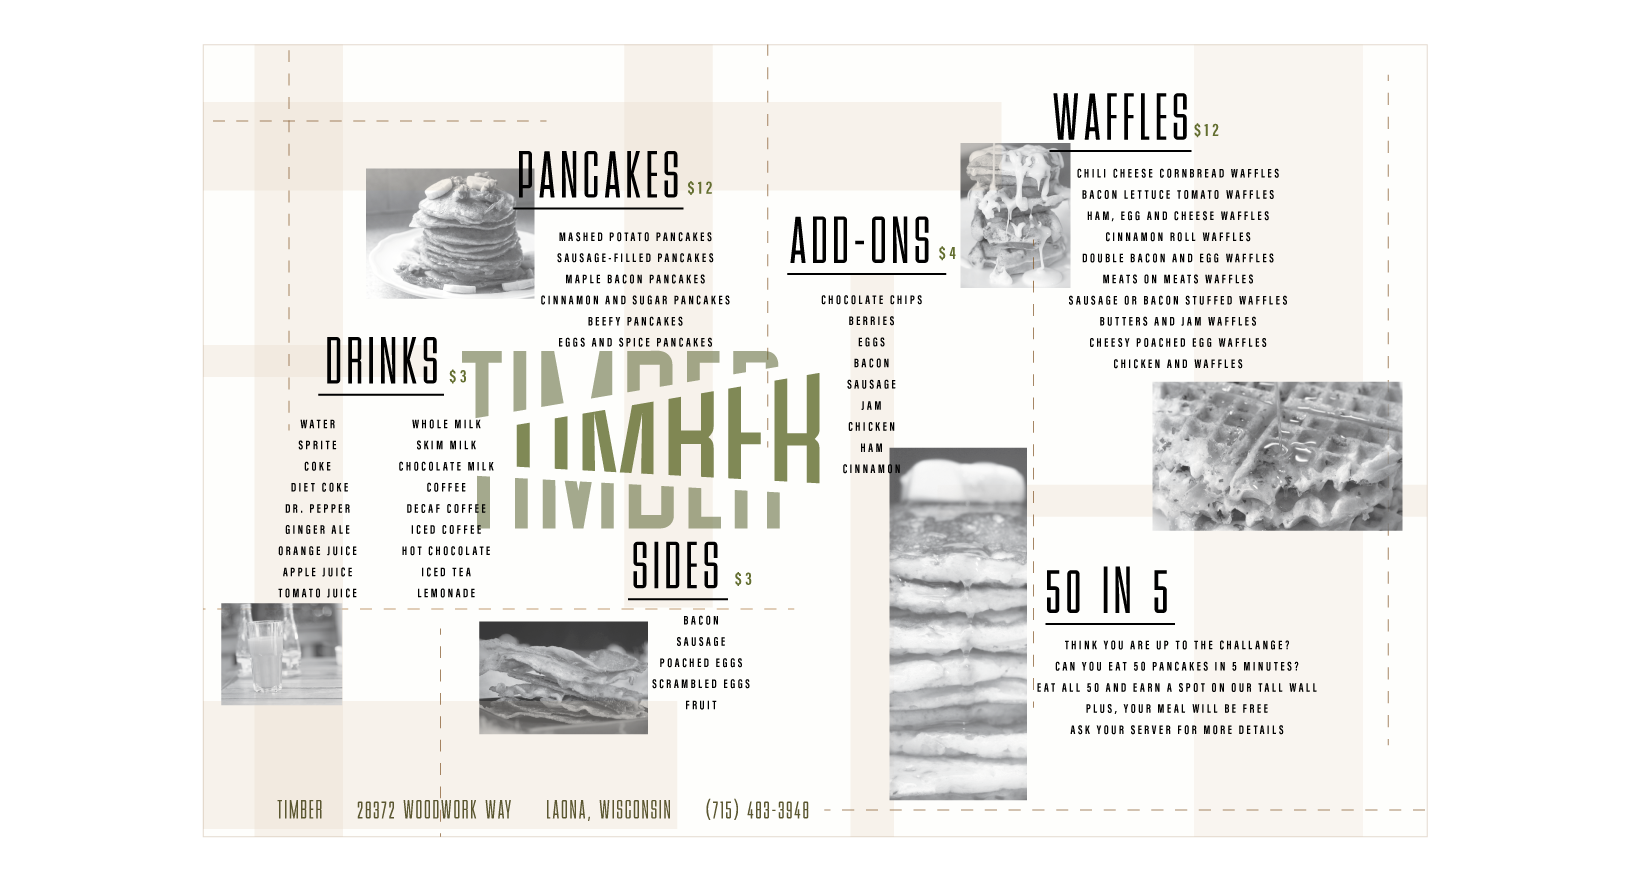 TIMBER_MENU copy.png